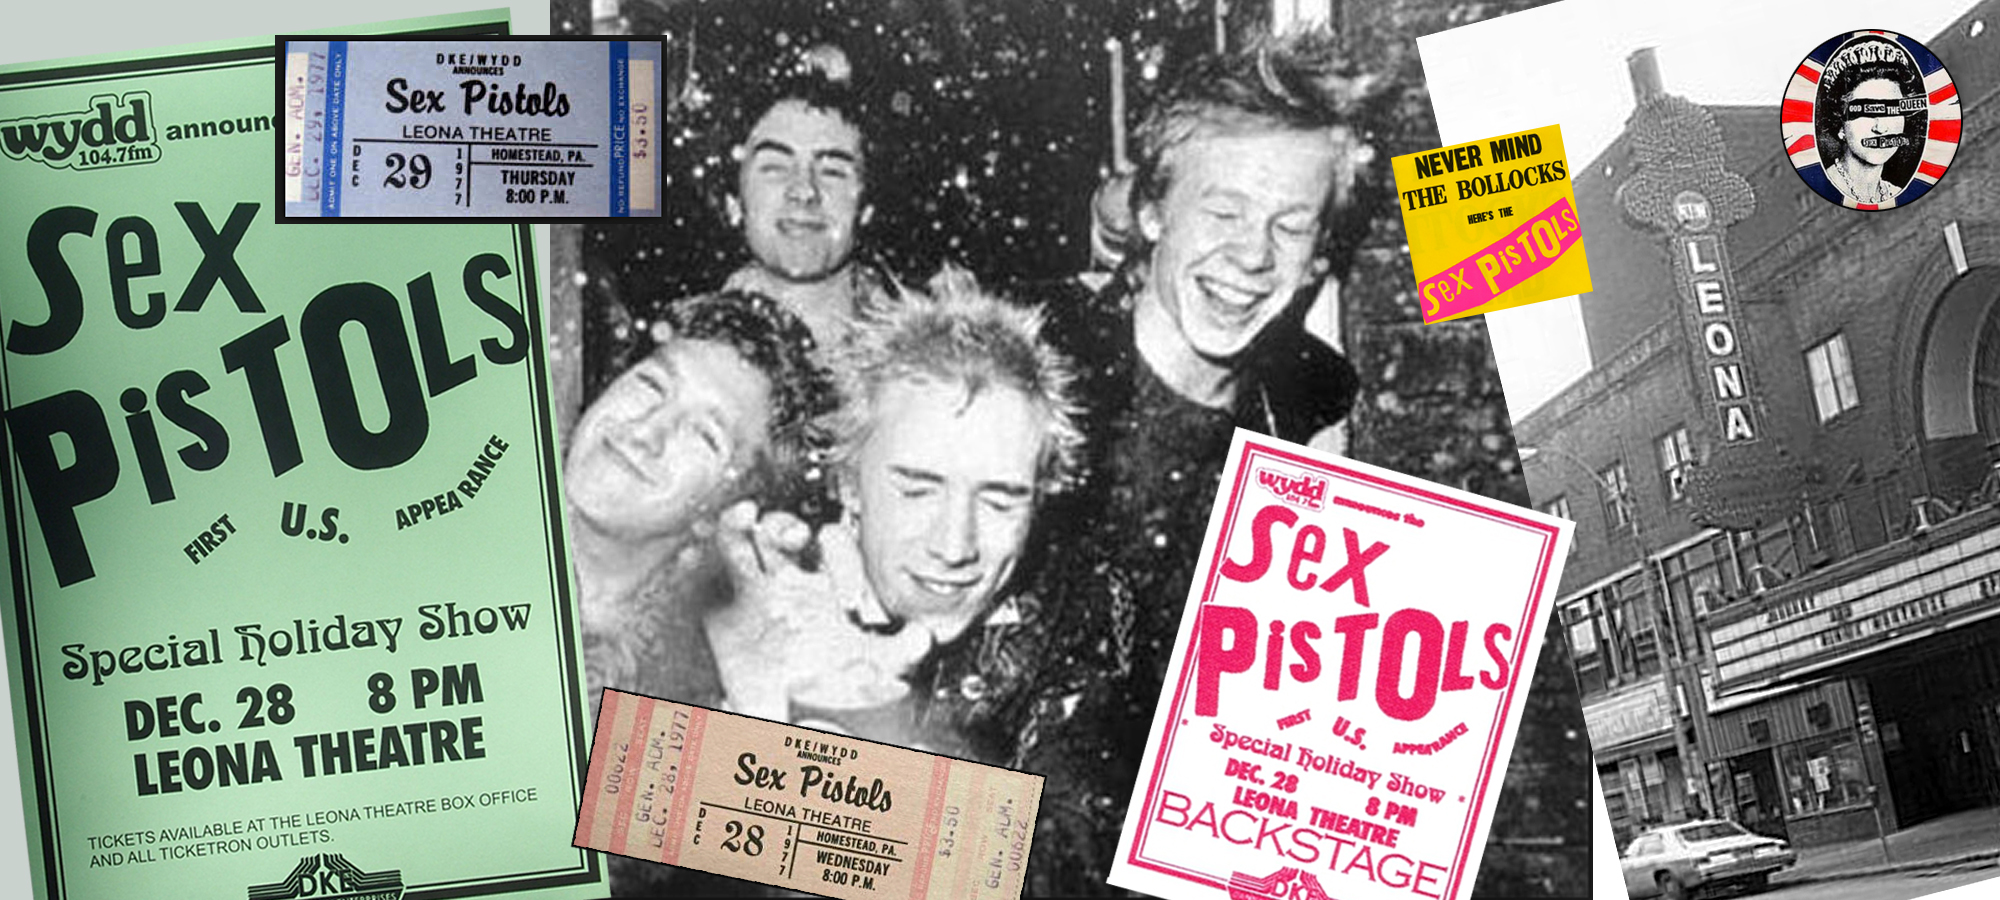 The Sex Pistols - cancelled show in Homestead, PA, Dec 28, 1977